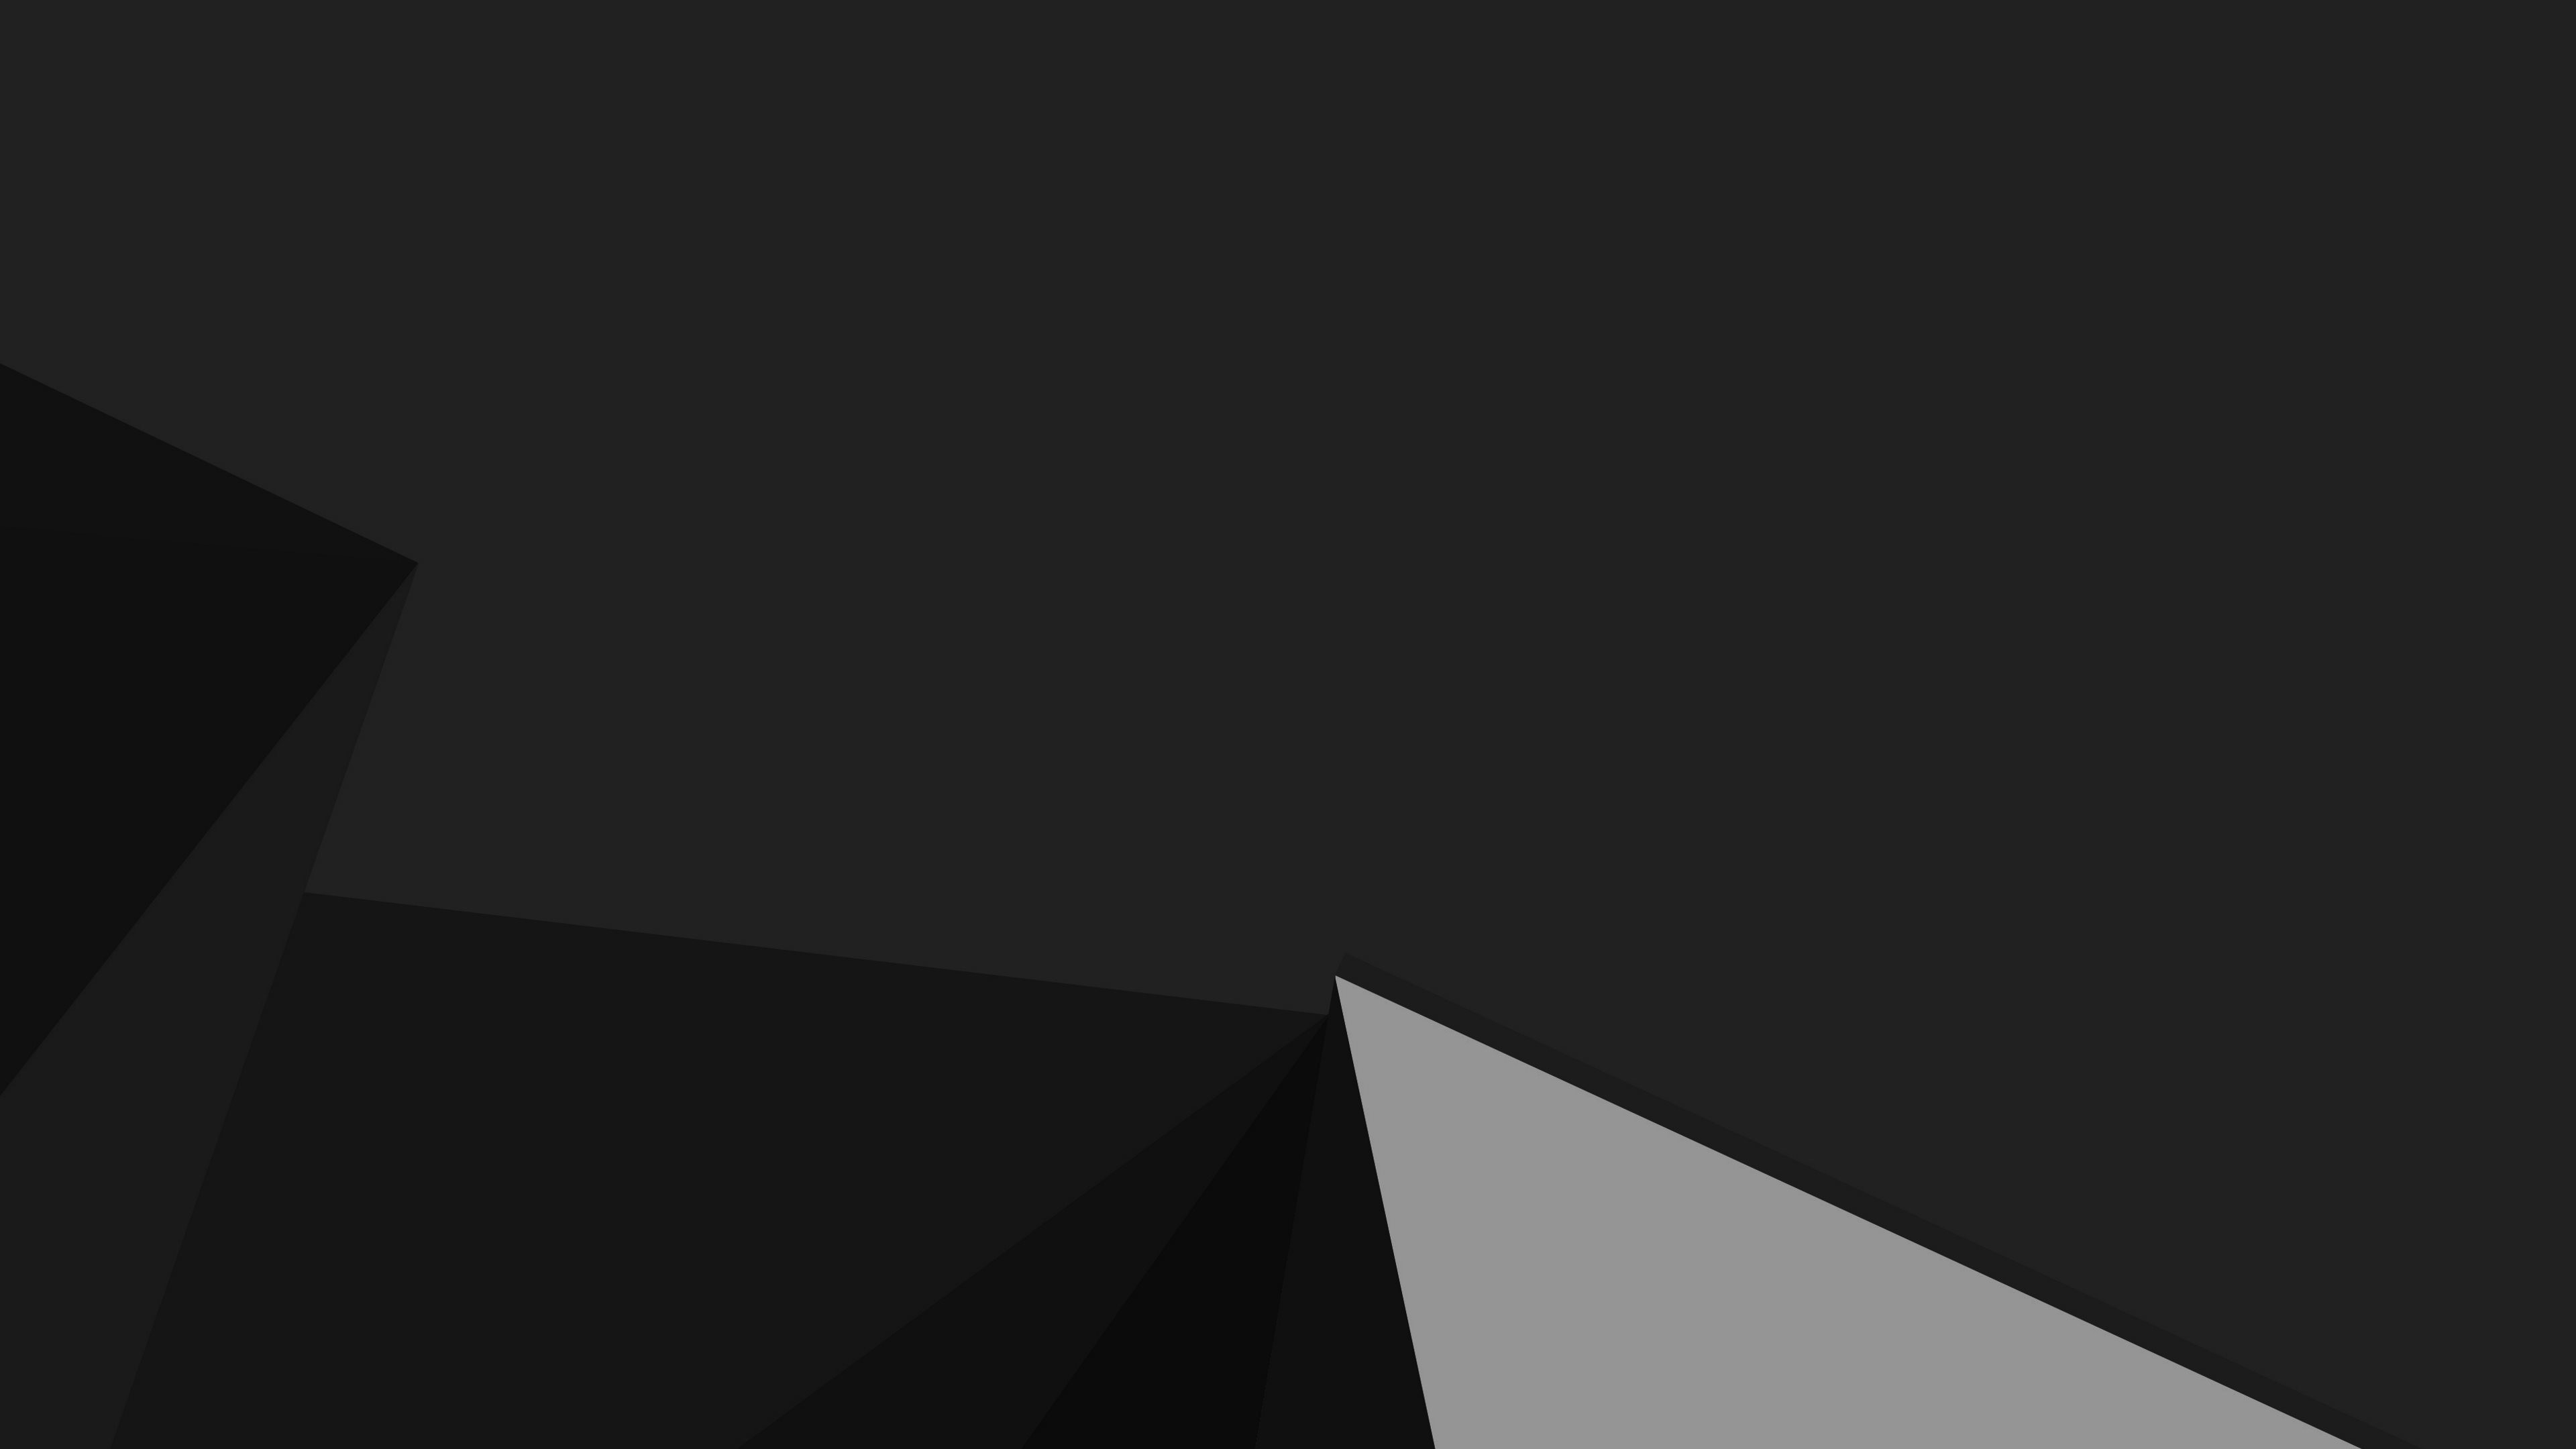 4k minimalist wallpaper 67 images for Minimal art black and white